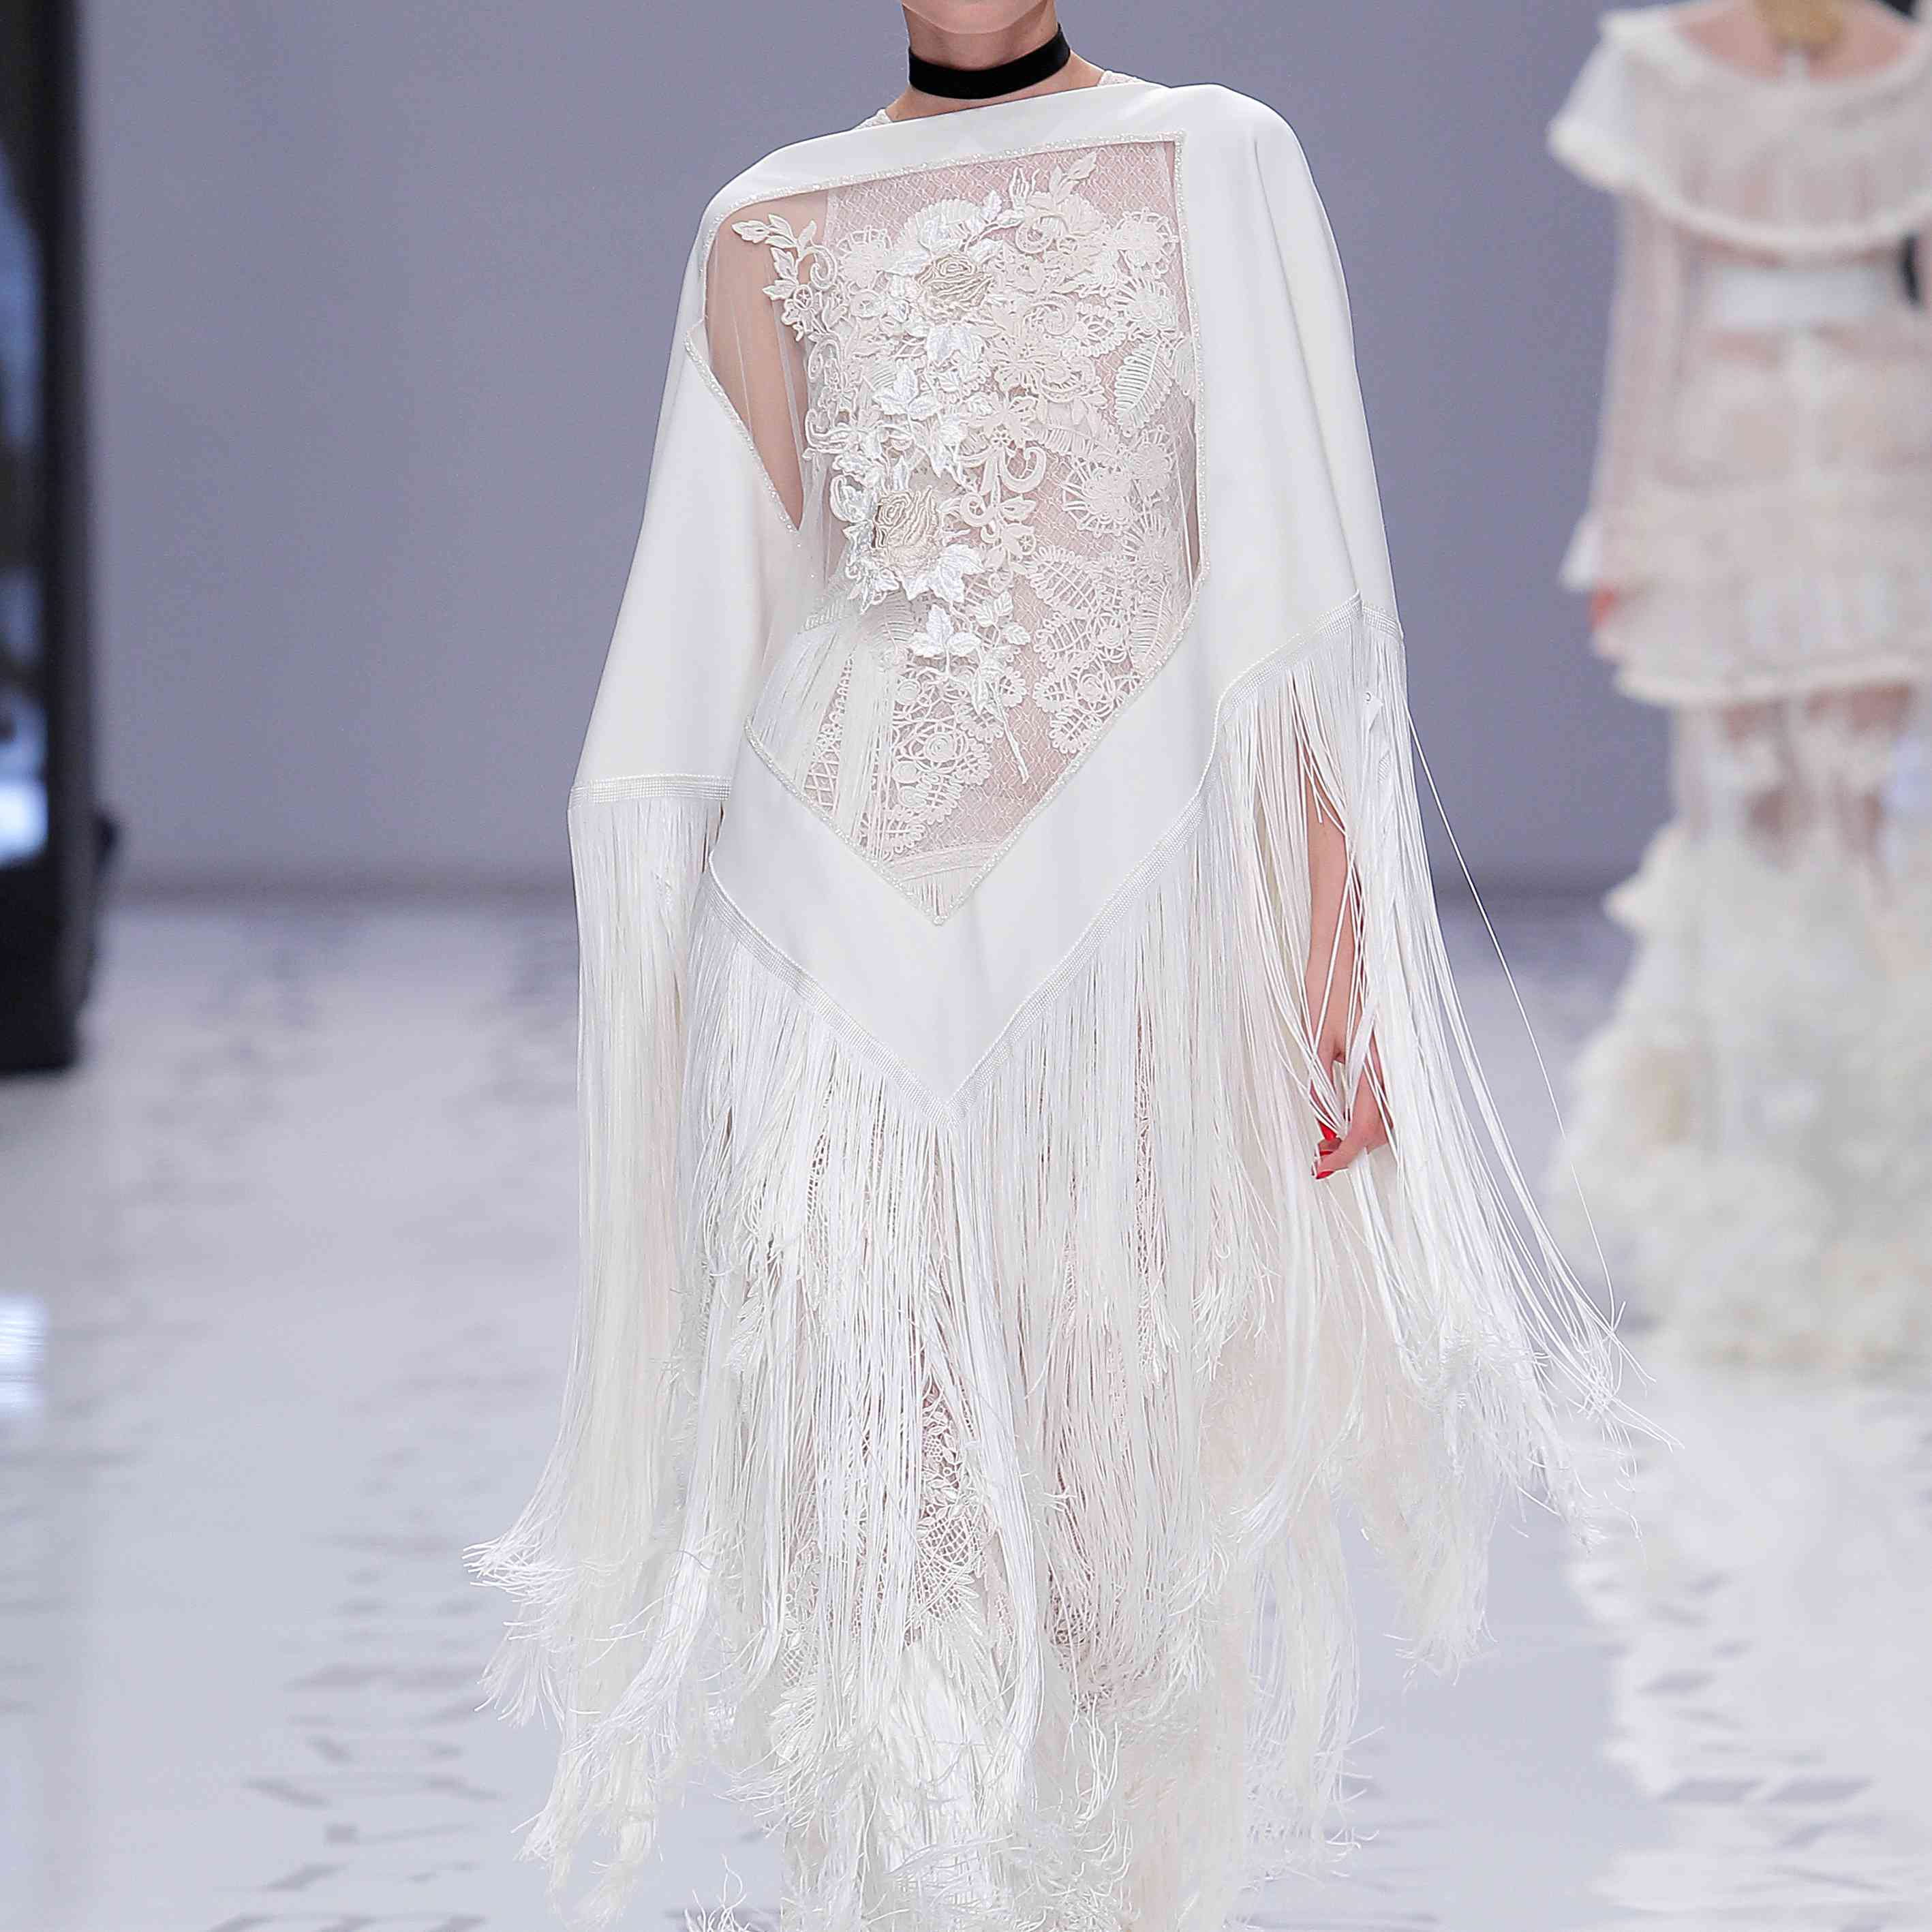 Model in a sleeveless floral lace dress and floral-embroidered beaded poncho with dramatic fringe detail.